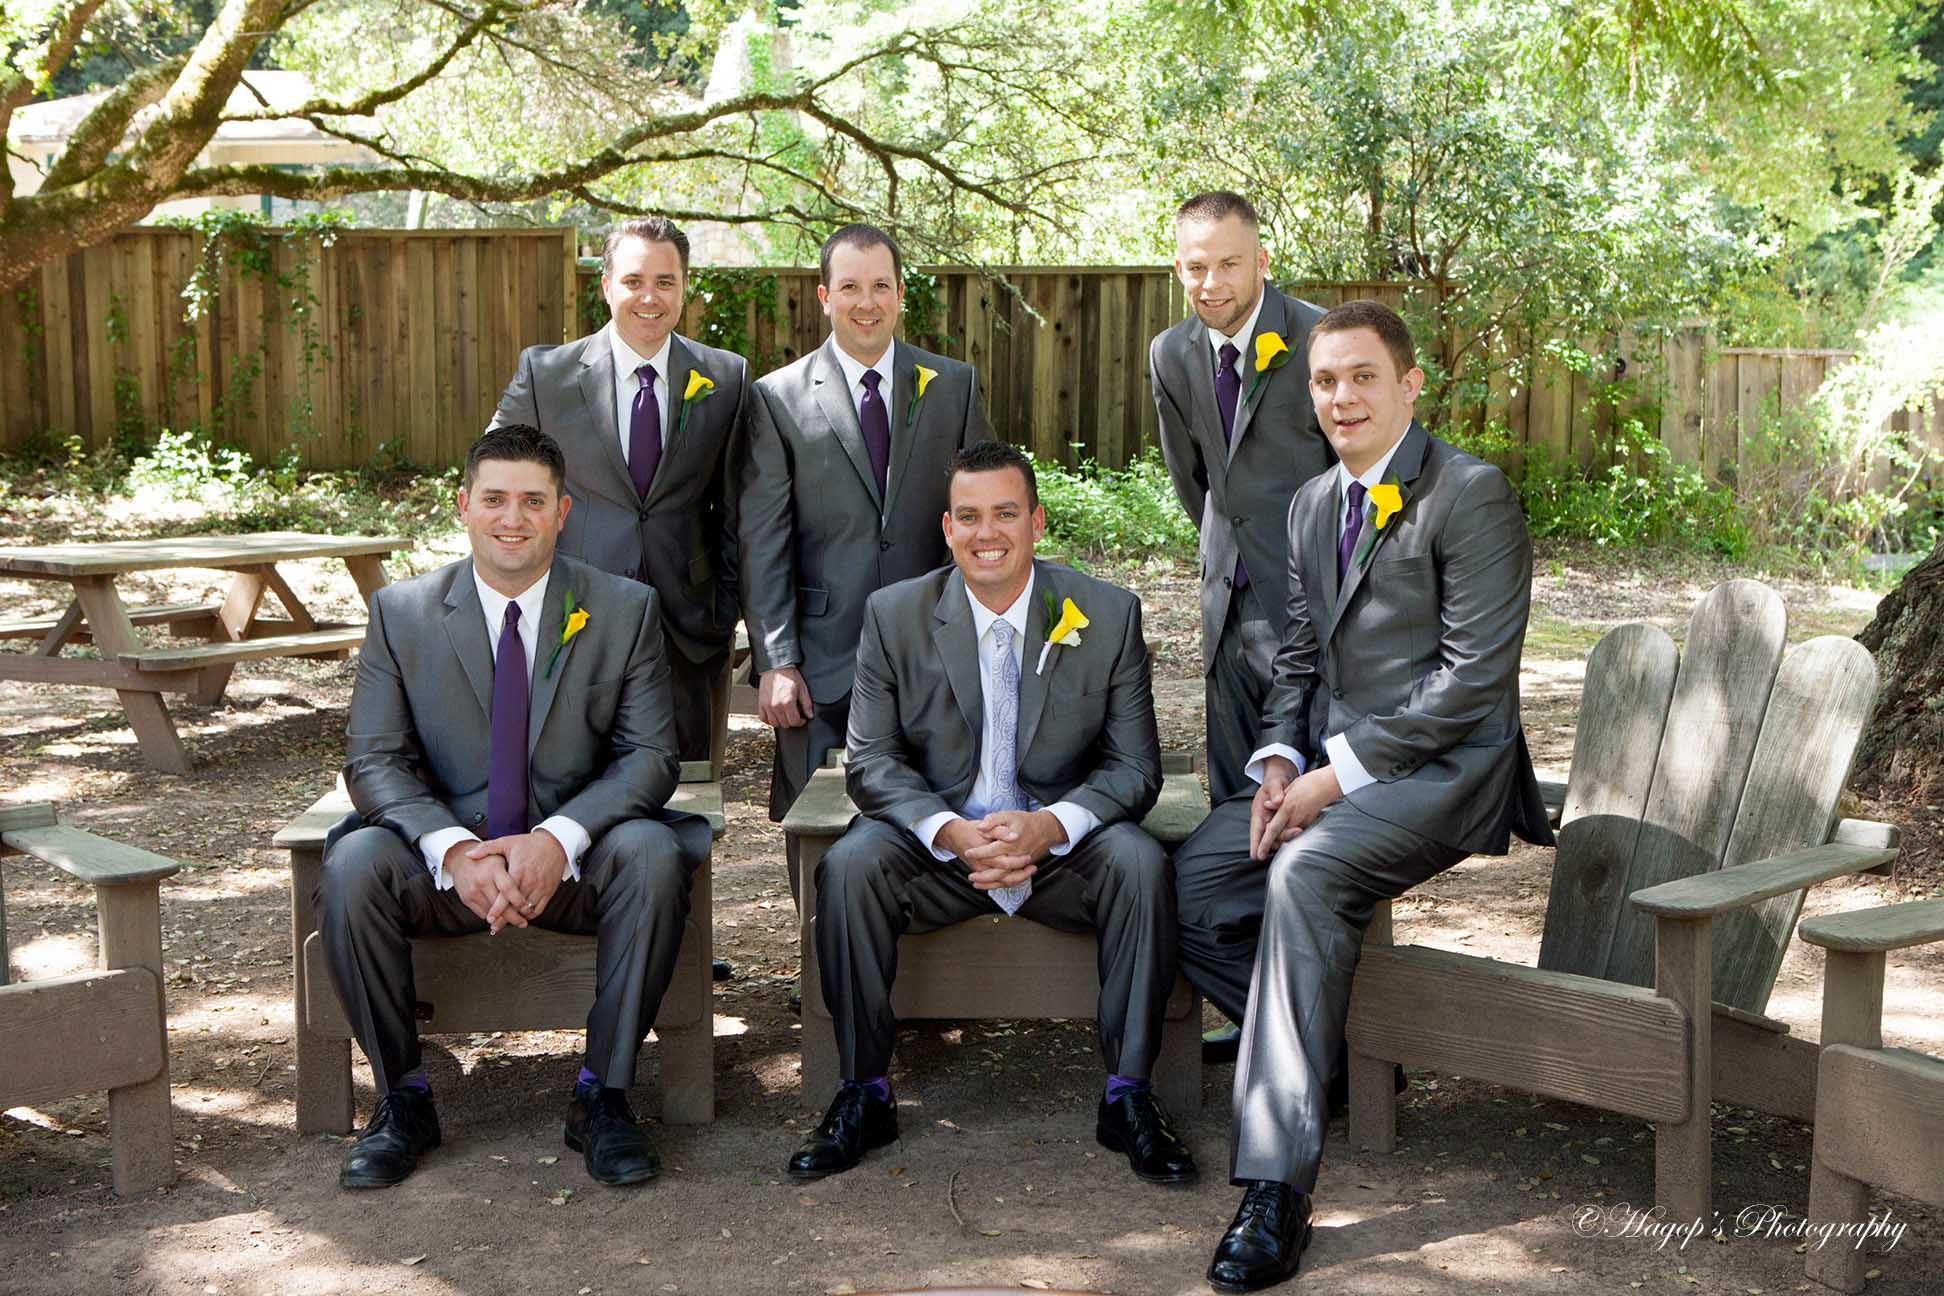 groom with his groomsmen posing for the camera